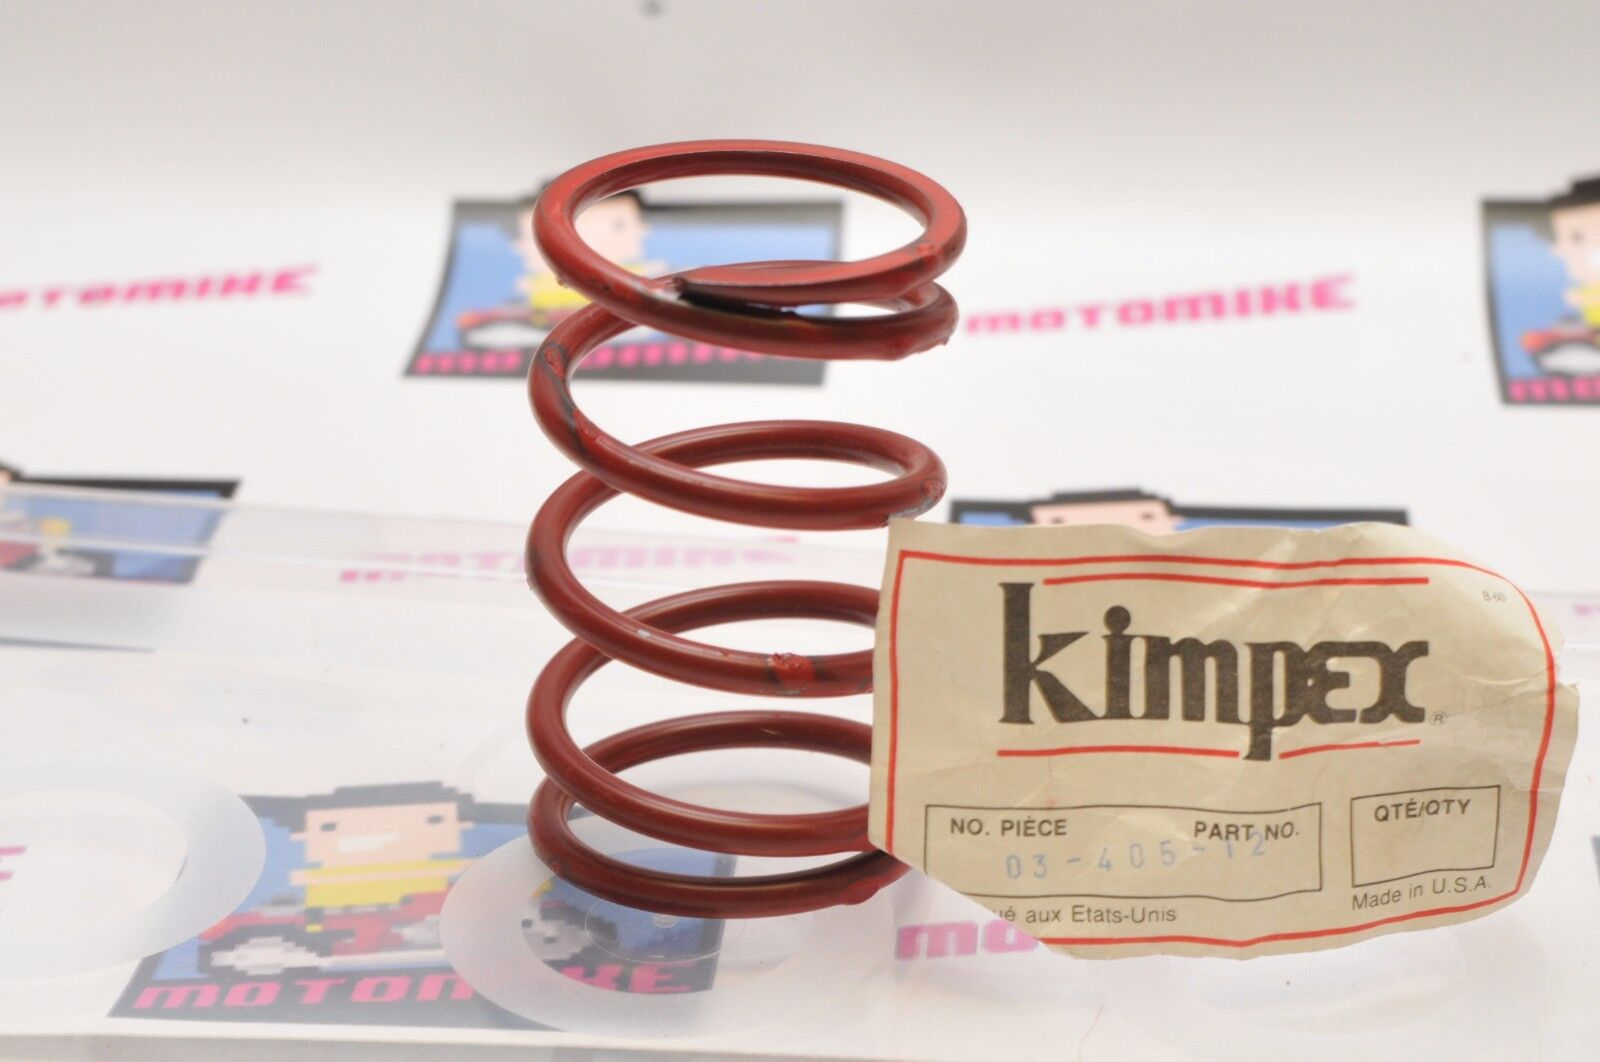 KIMPEX CLUTCH SPRING 03-405-12 RED